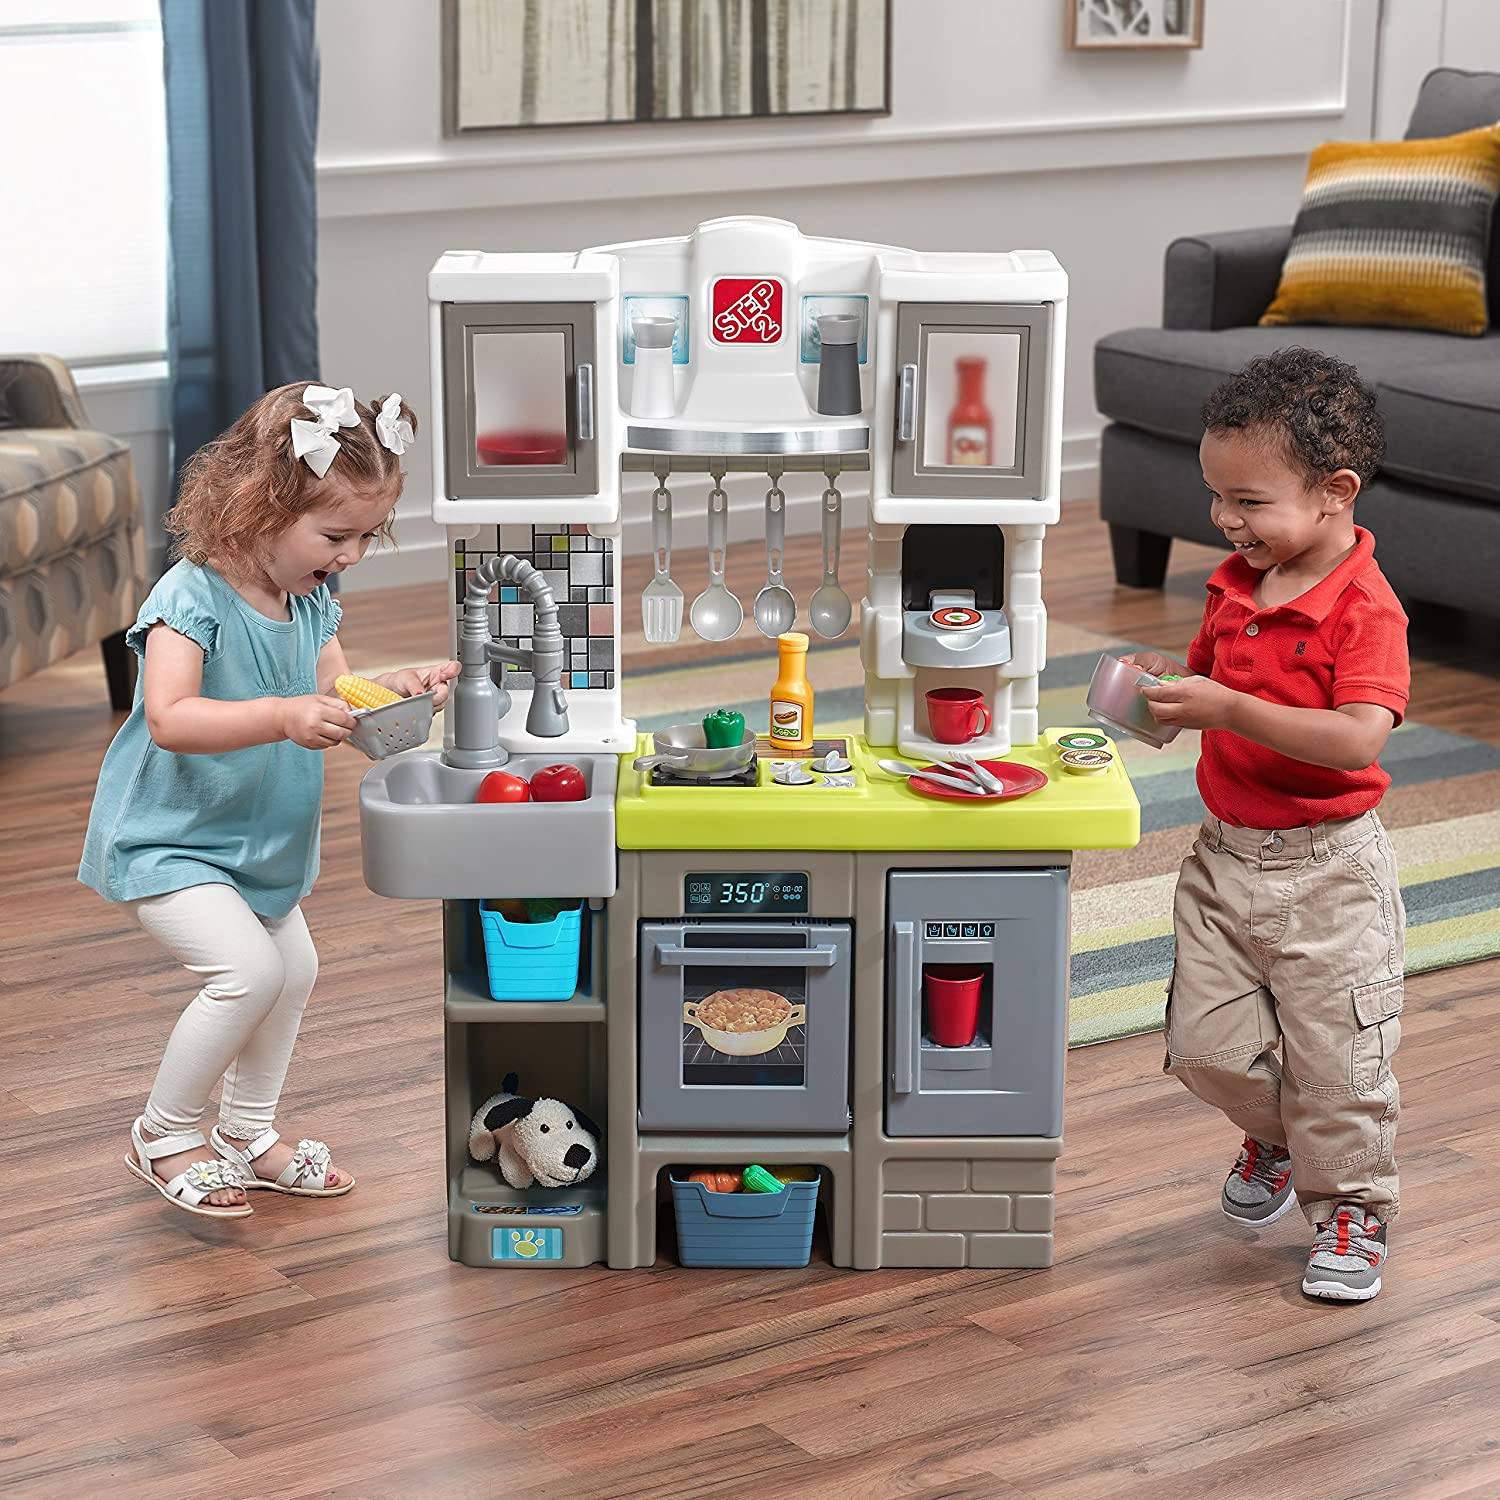 Amazon Step2 Contemporary Chef Kitchen Playset Toys Games